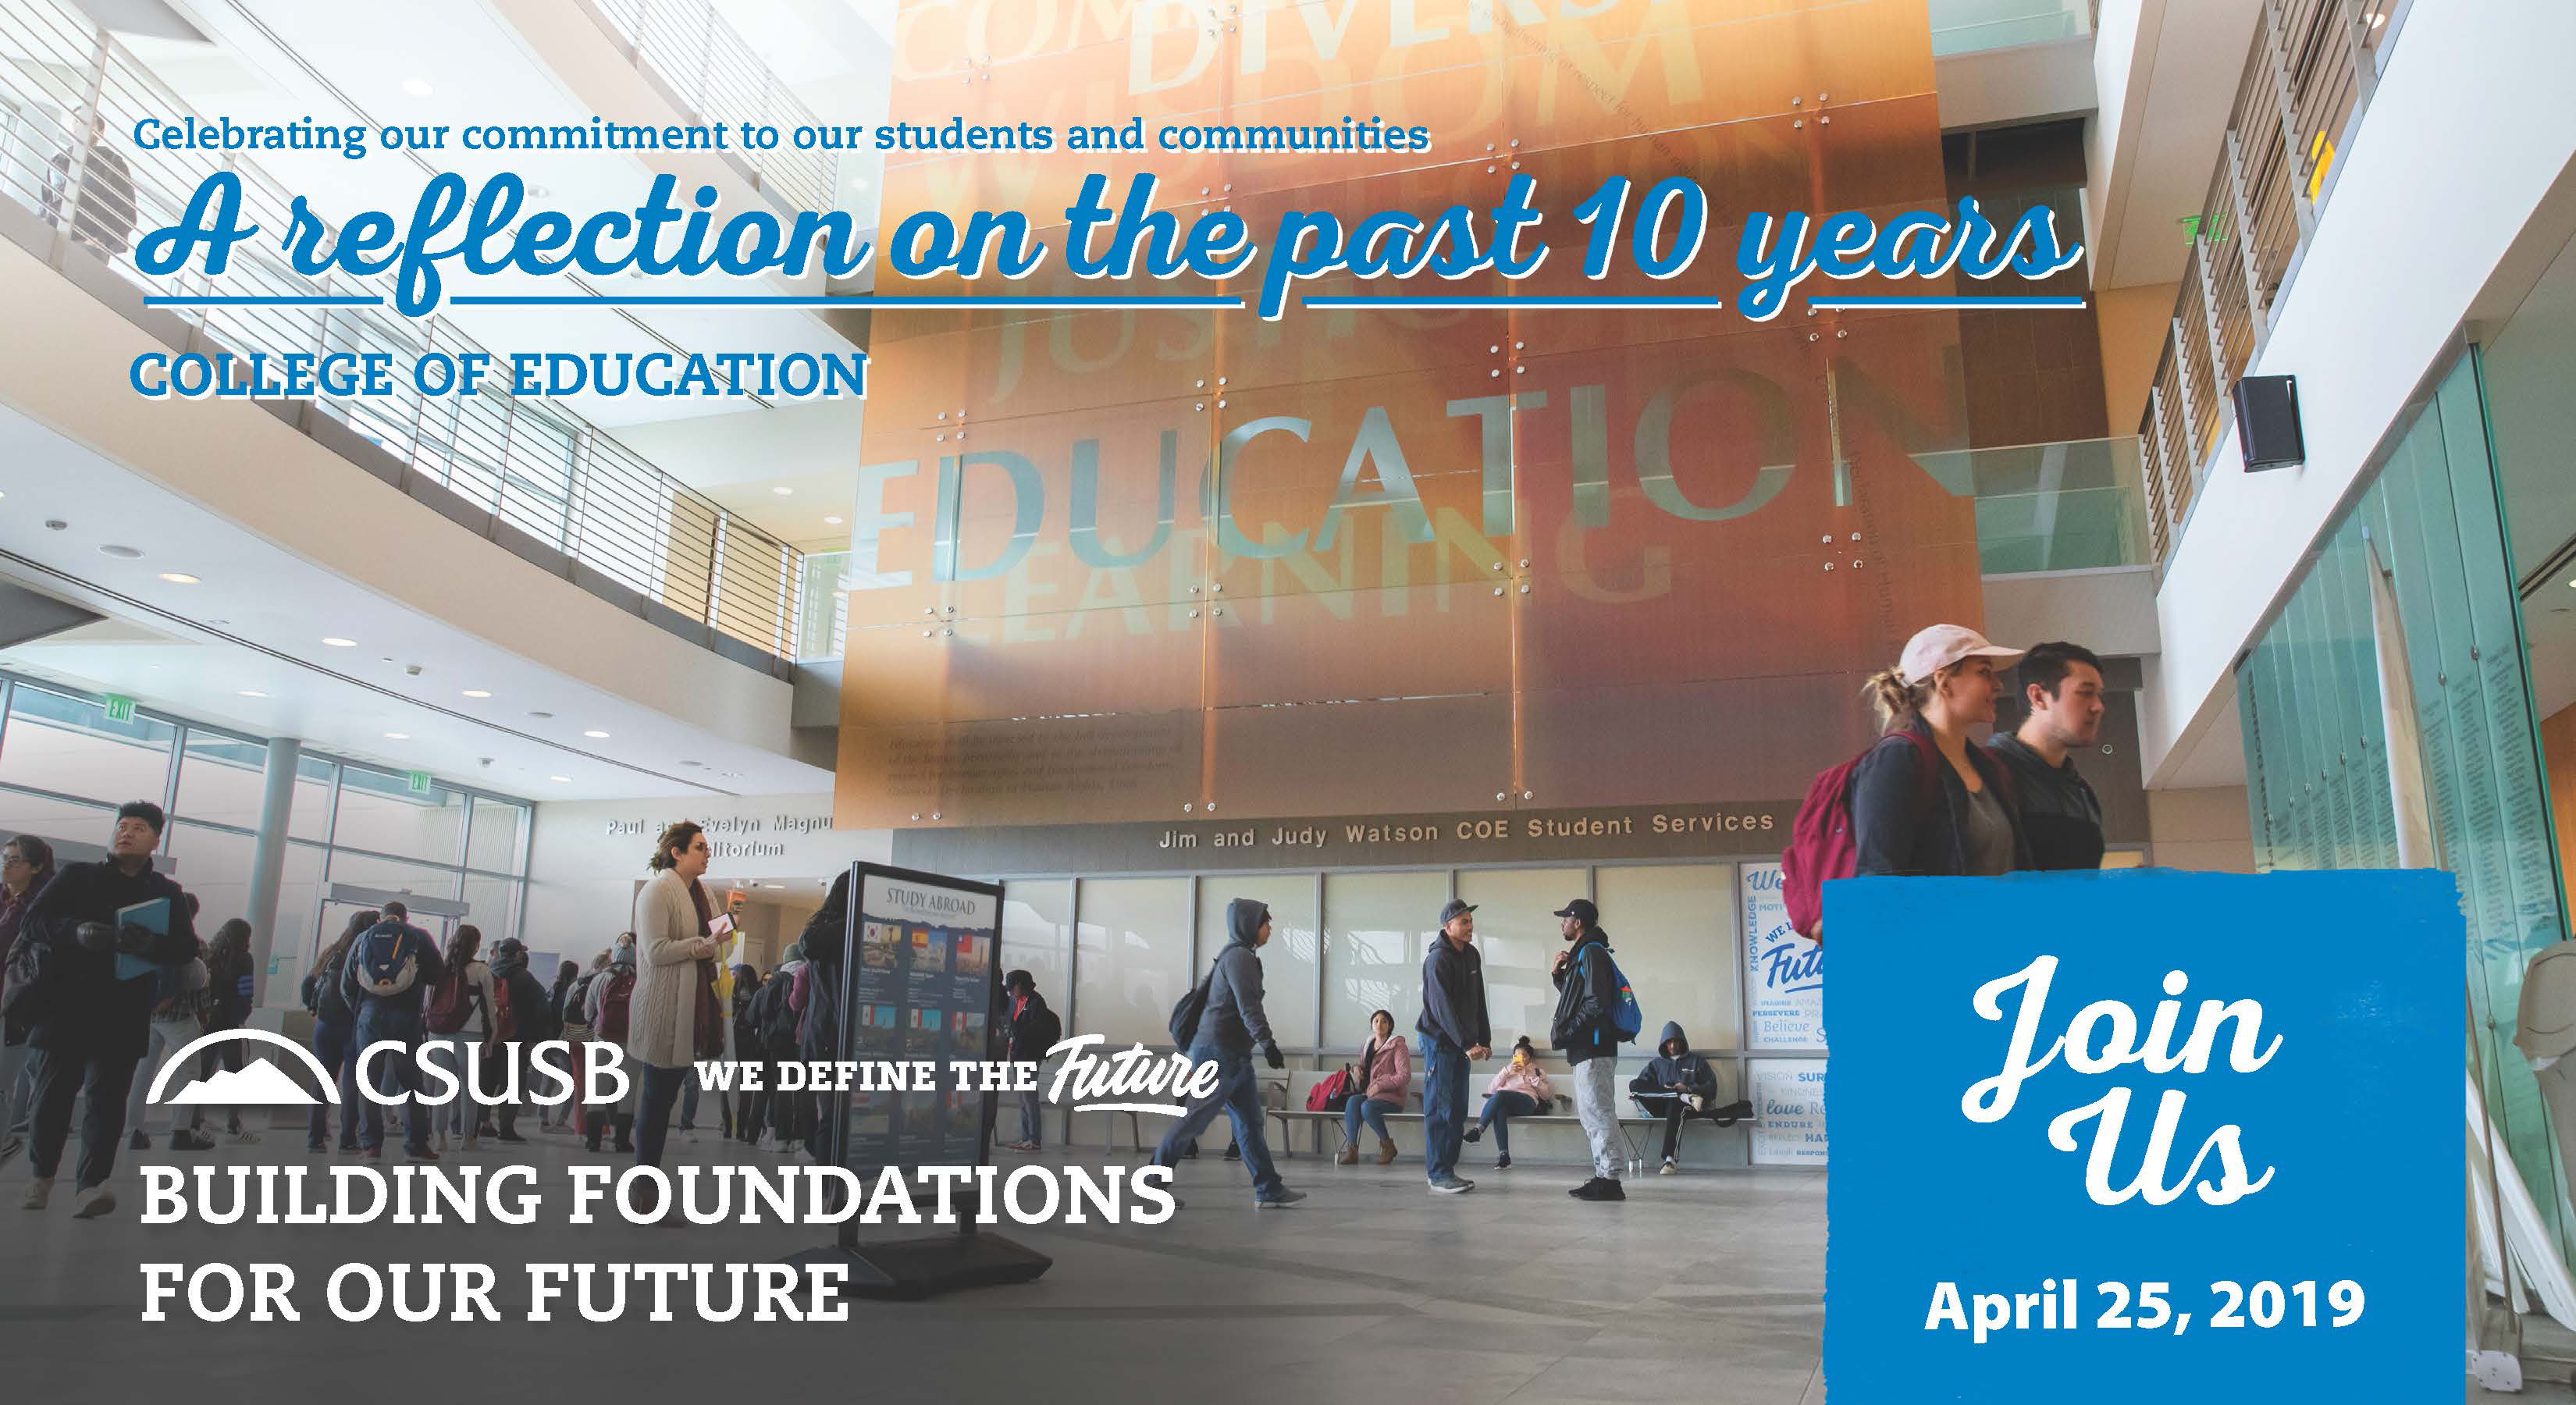 CSUSB College of Education hosts open house on April 25